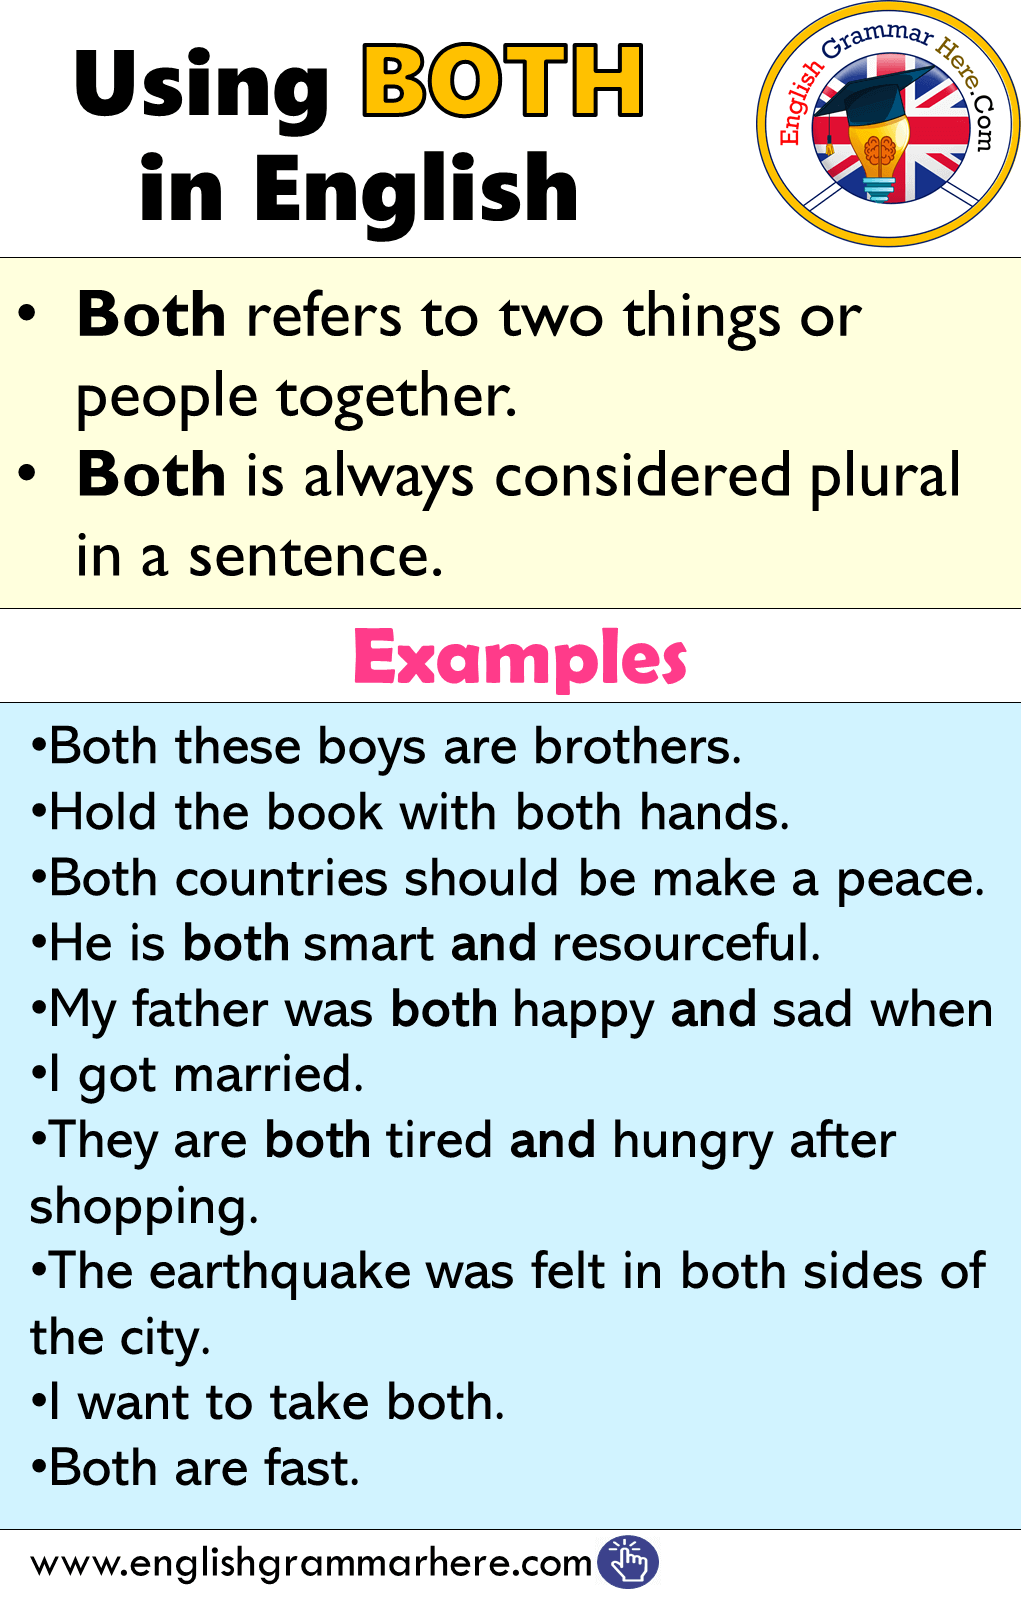 Using BOTH in English and Example Sentences